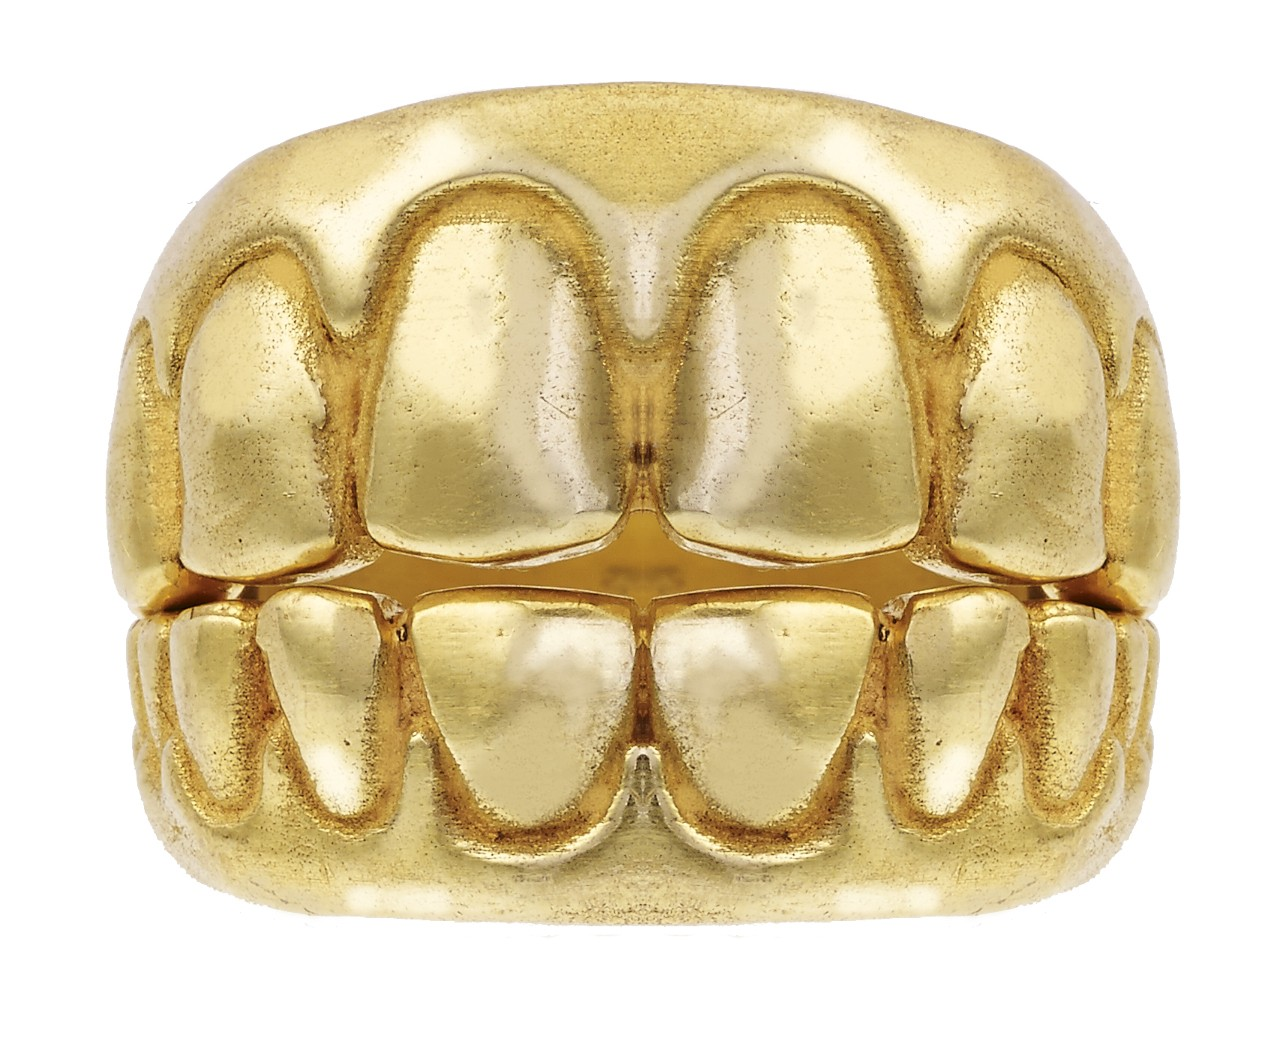 Dentists require a lot of cash for gold teeth